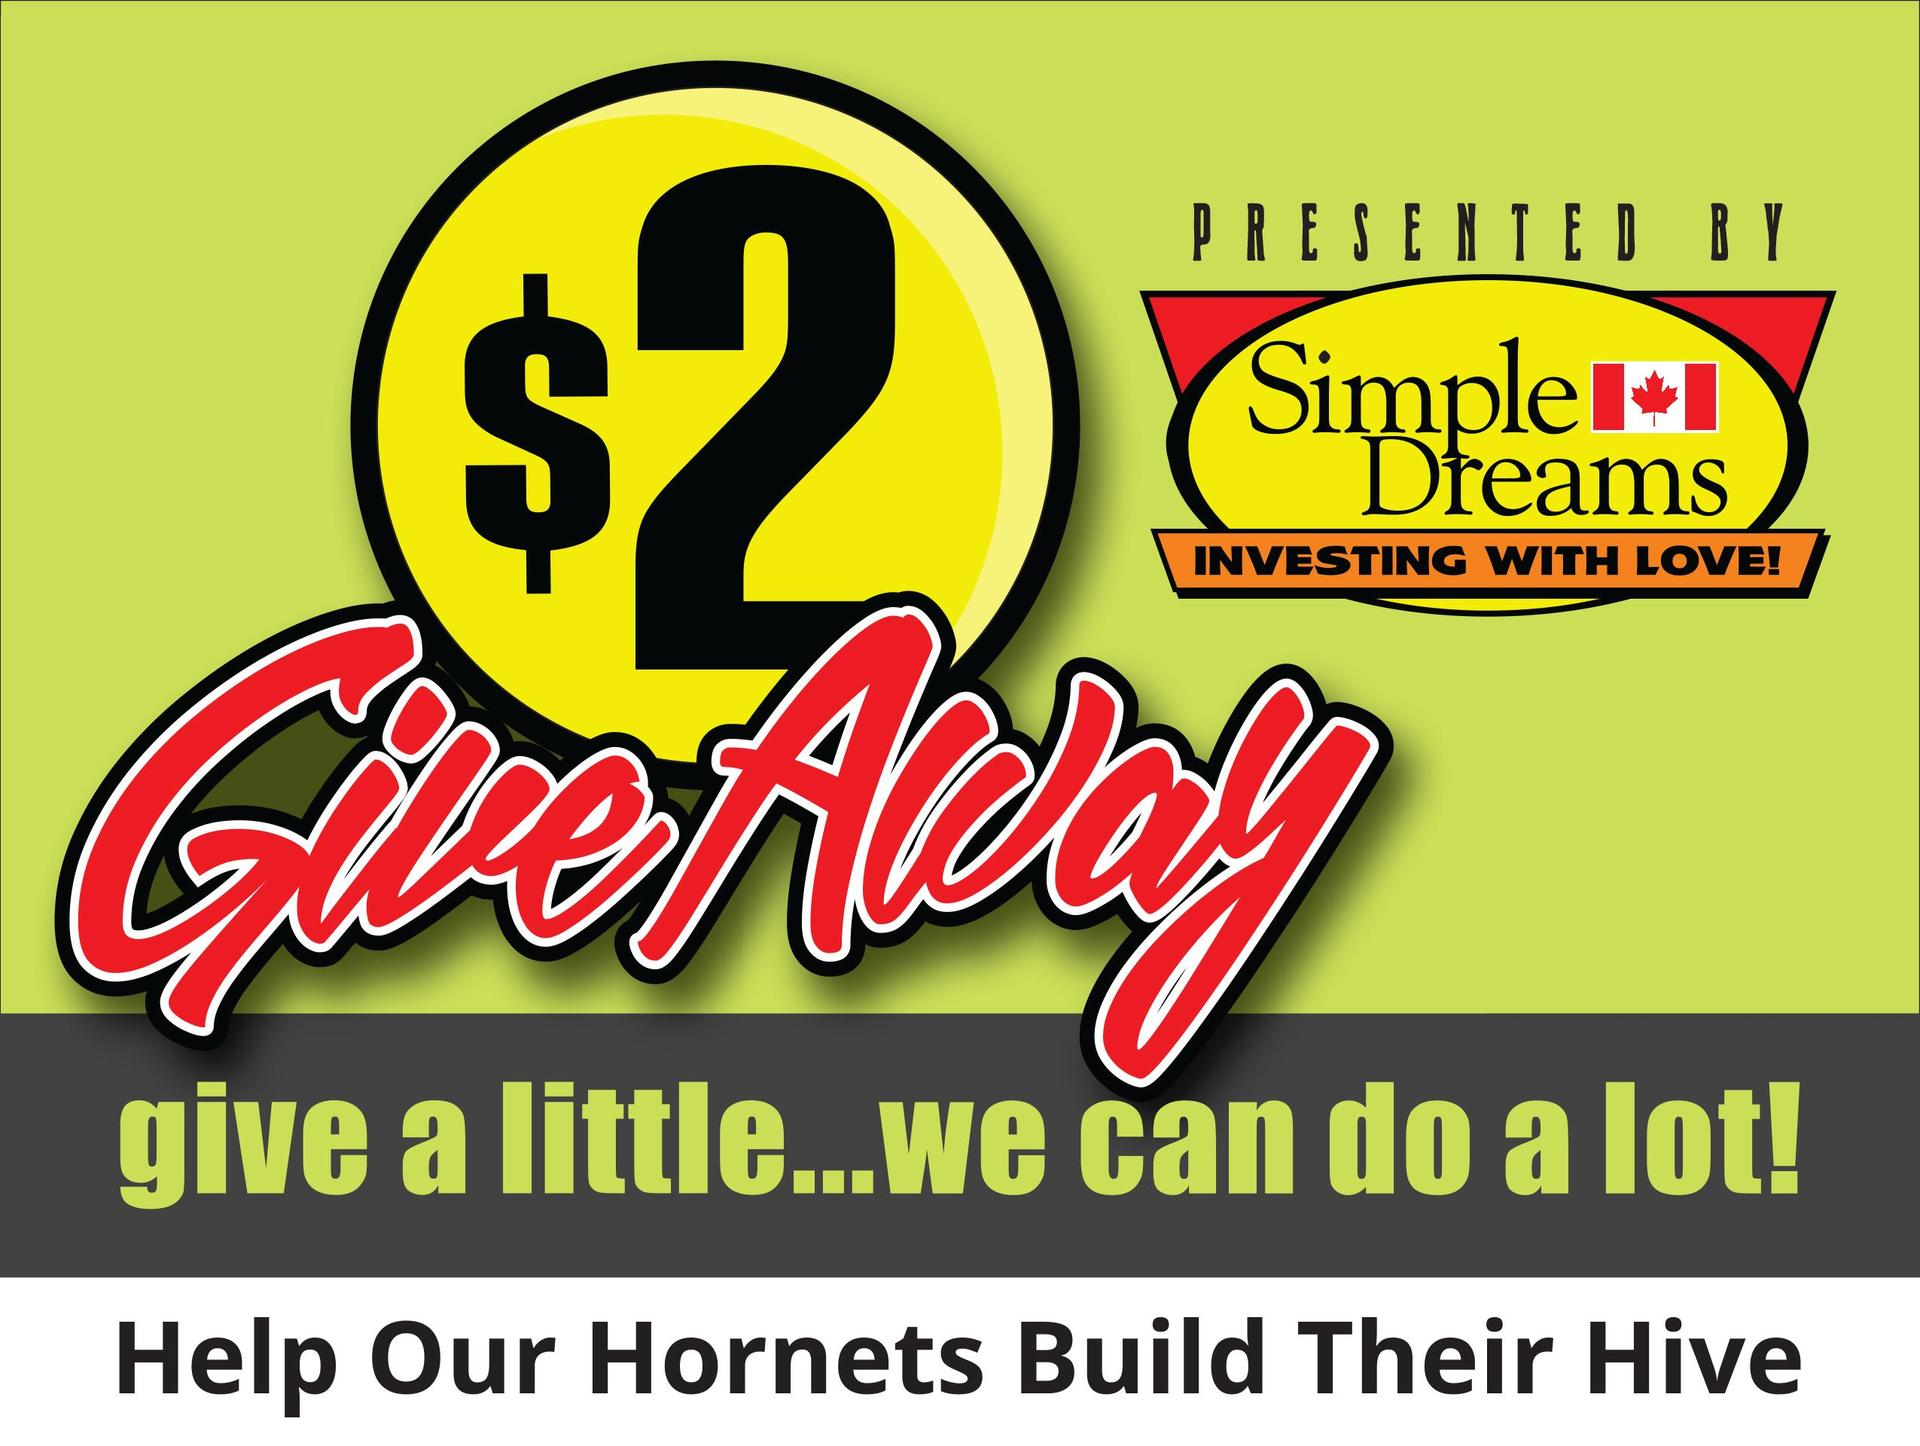 $2 Give Away. Give a little... we can do a lot! Help our Hornets build their hive. Presented by Simple Dreams - Investing with love.